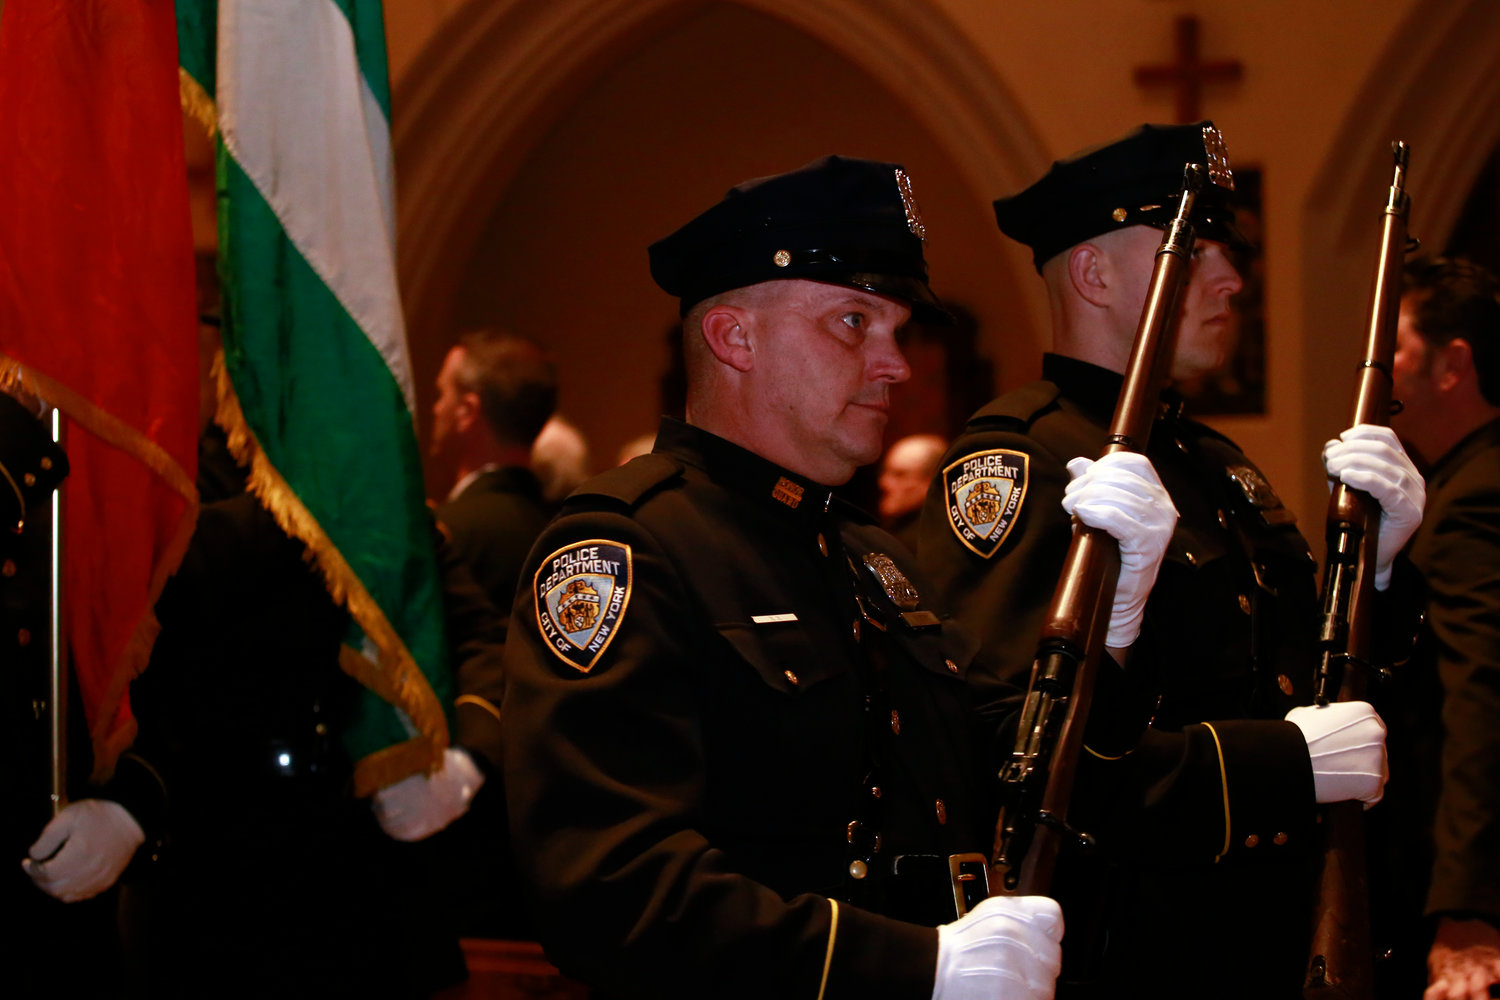 NYPD officers honored McDonald during the memorial service.